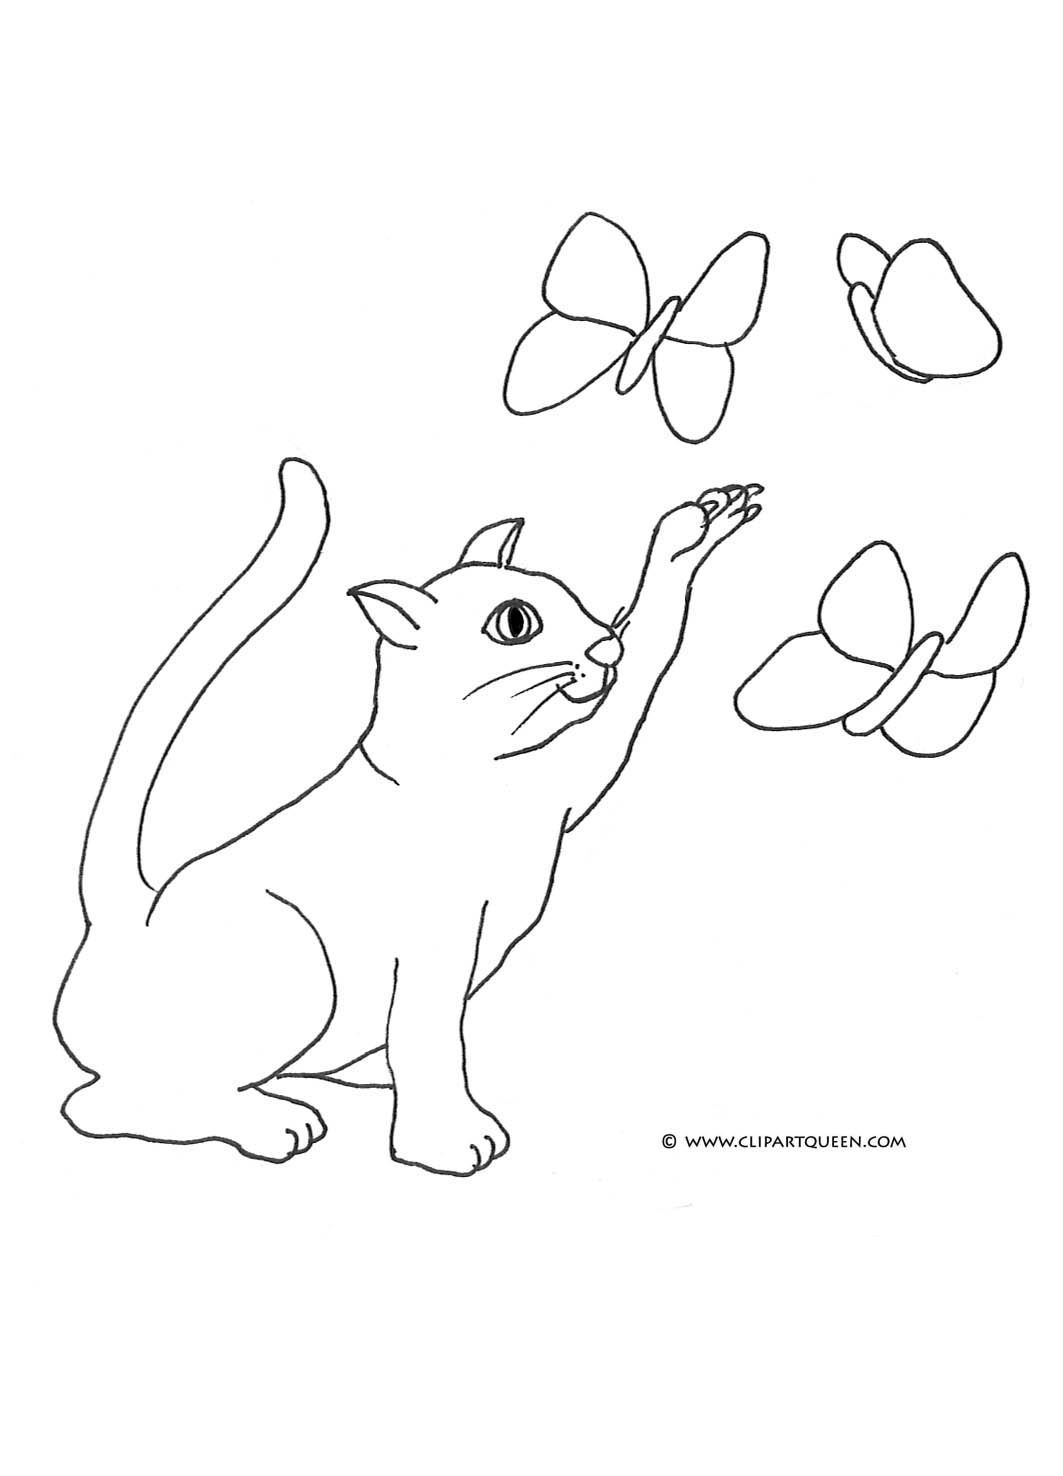 Funny Cat Clip Art Cat Coloring Pages Cat Catching Butterflies Cat Coloring Page Baseball Coloring Pages Coloring Pages